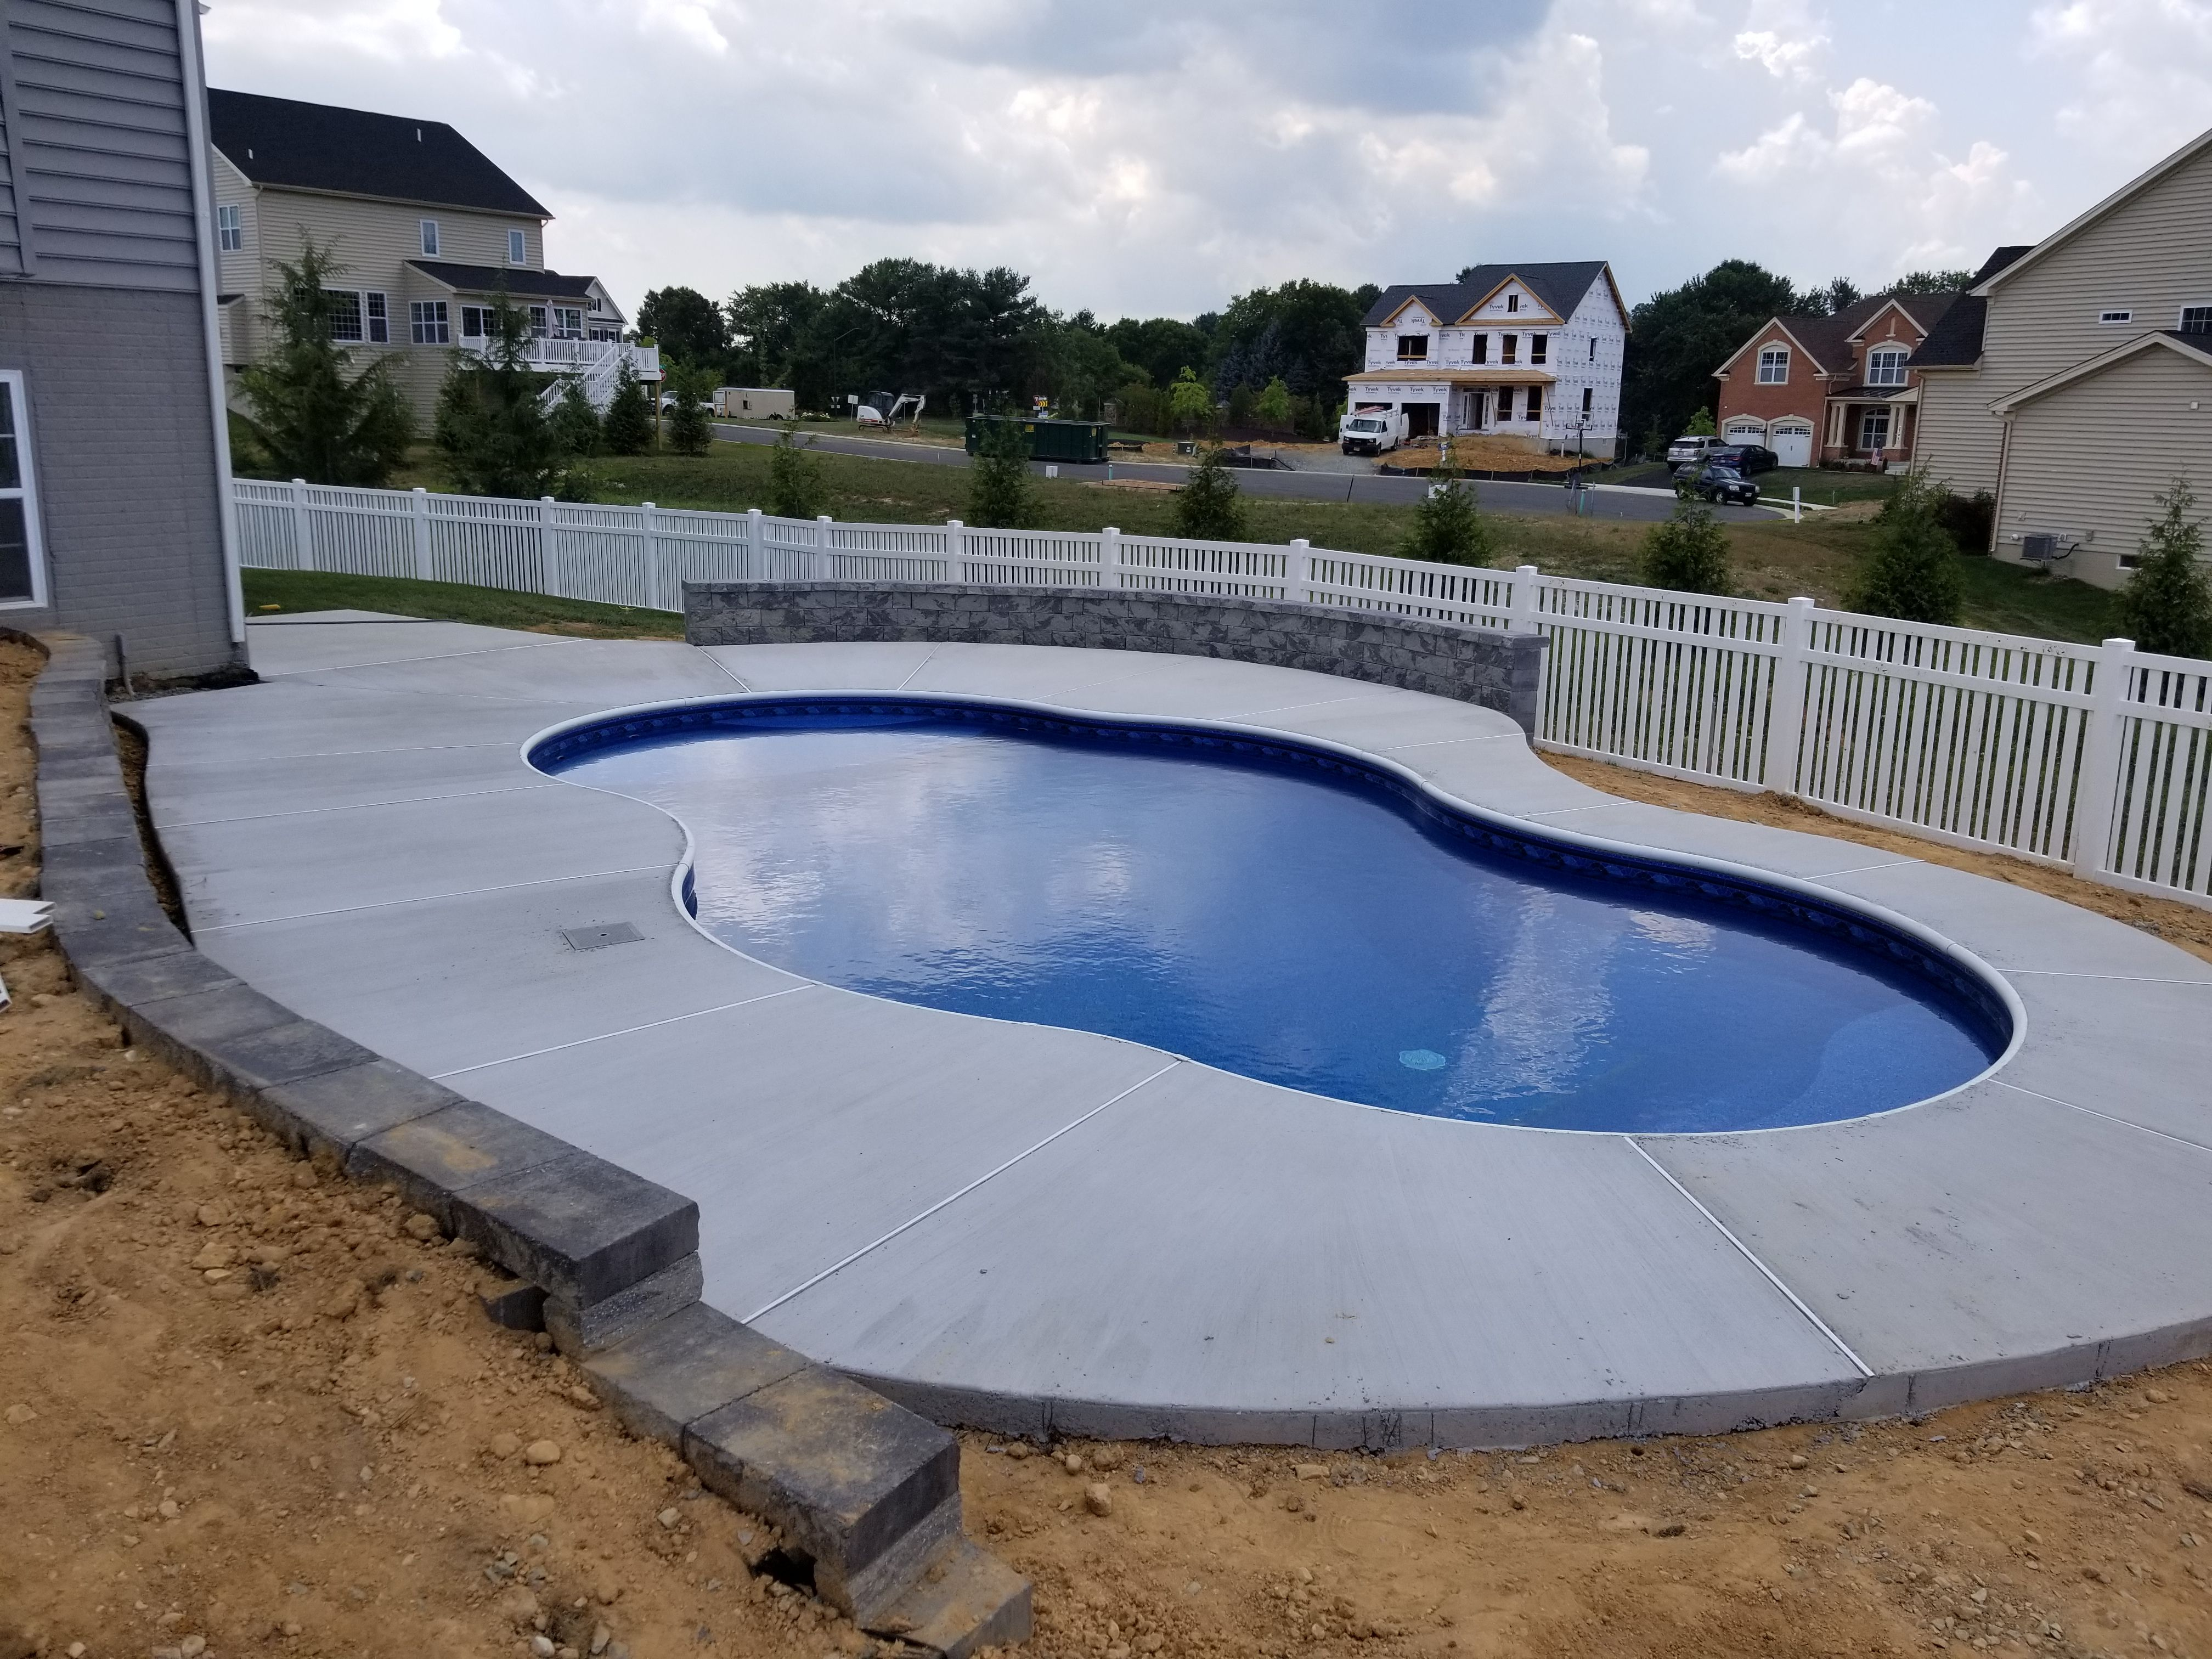 Freeform Pool With Retaining Wall Sitting Wall And Broom Finished Concrete Pool Freeform Pools Retaining Wall